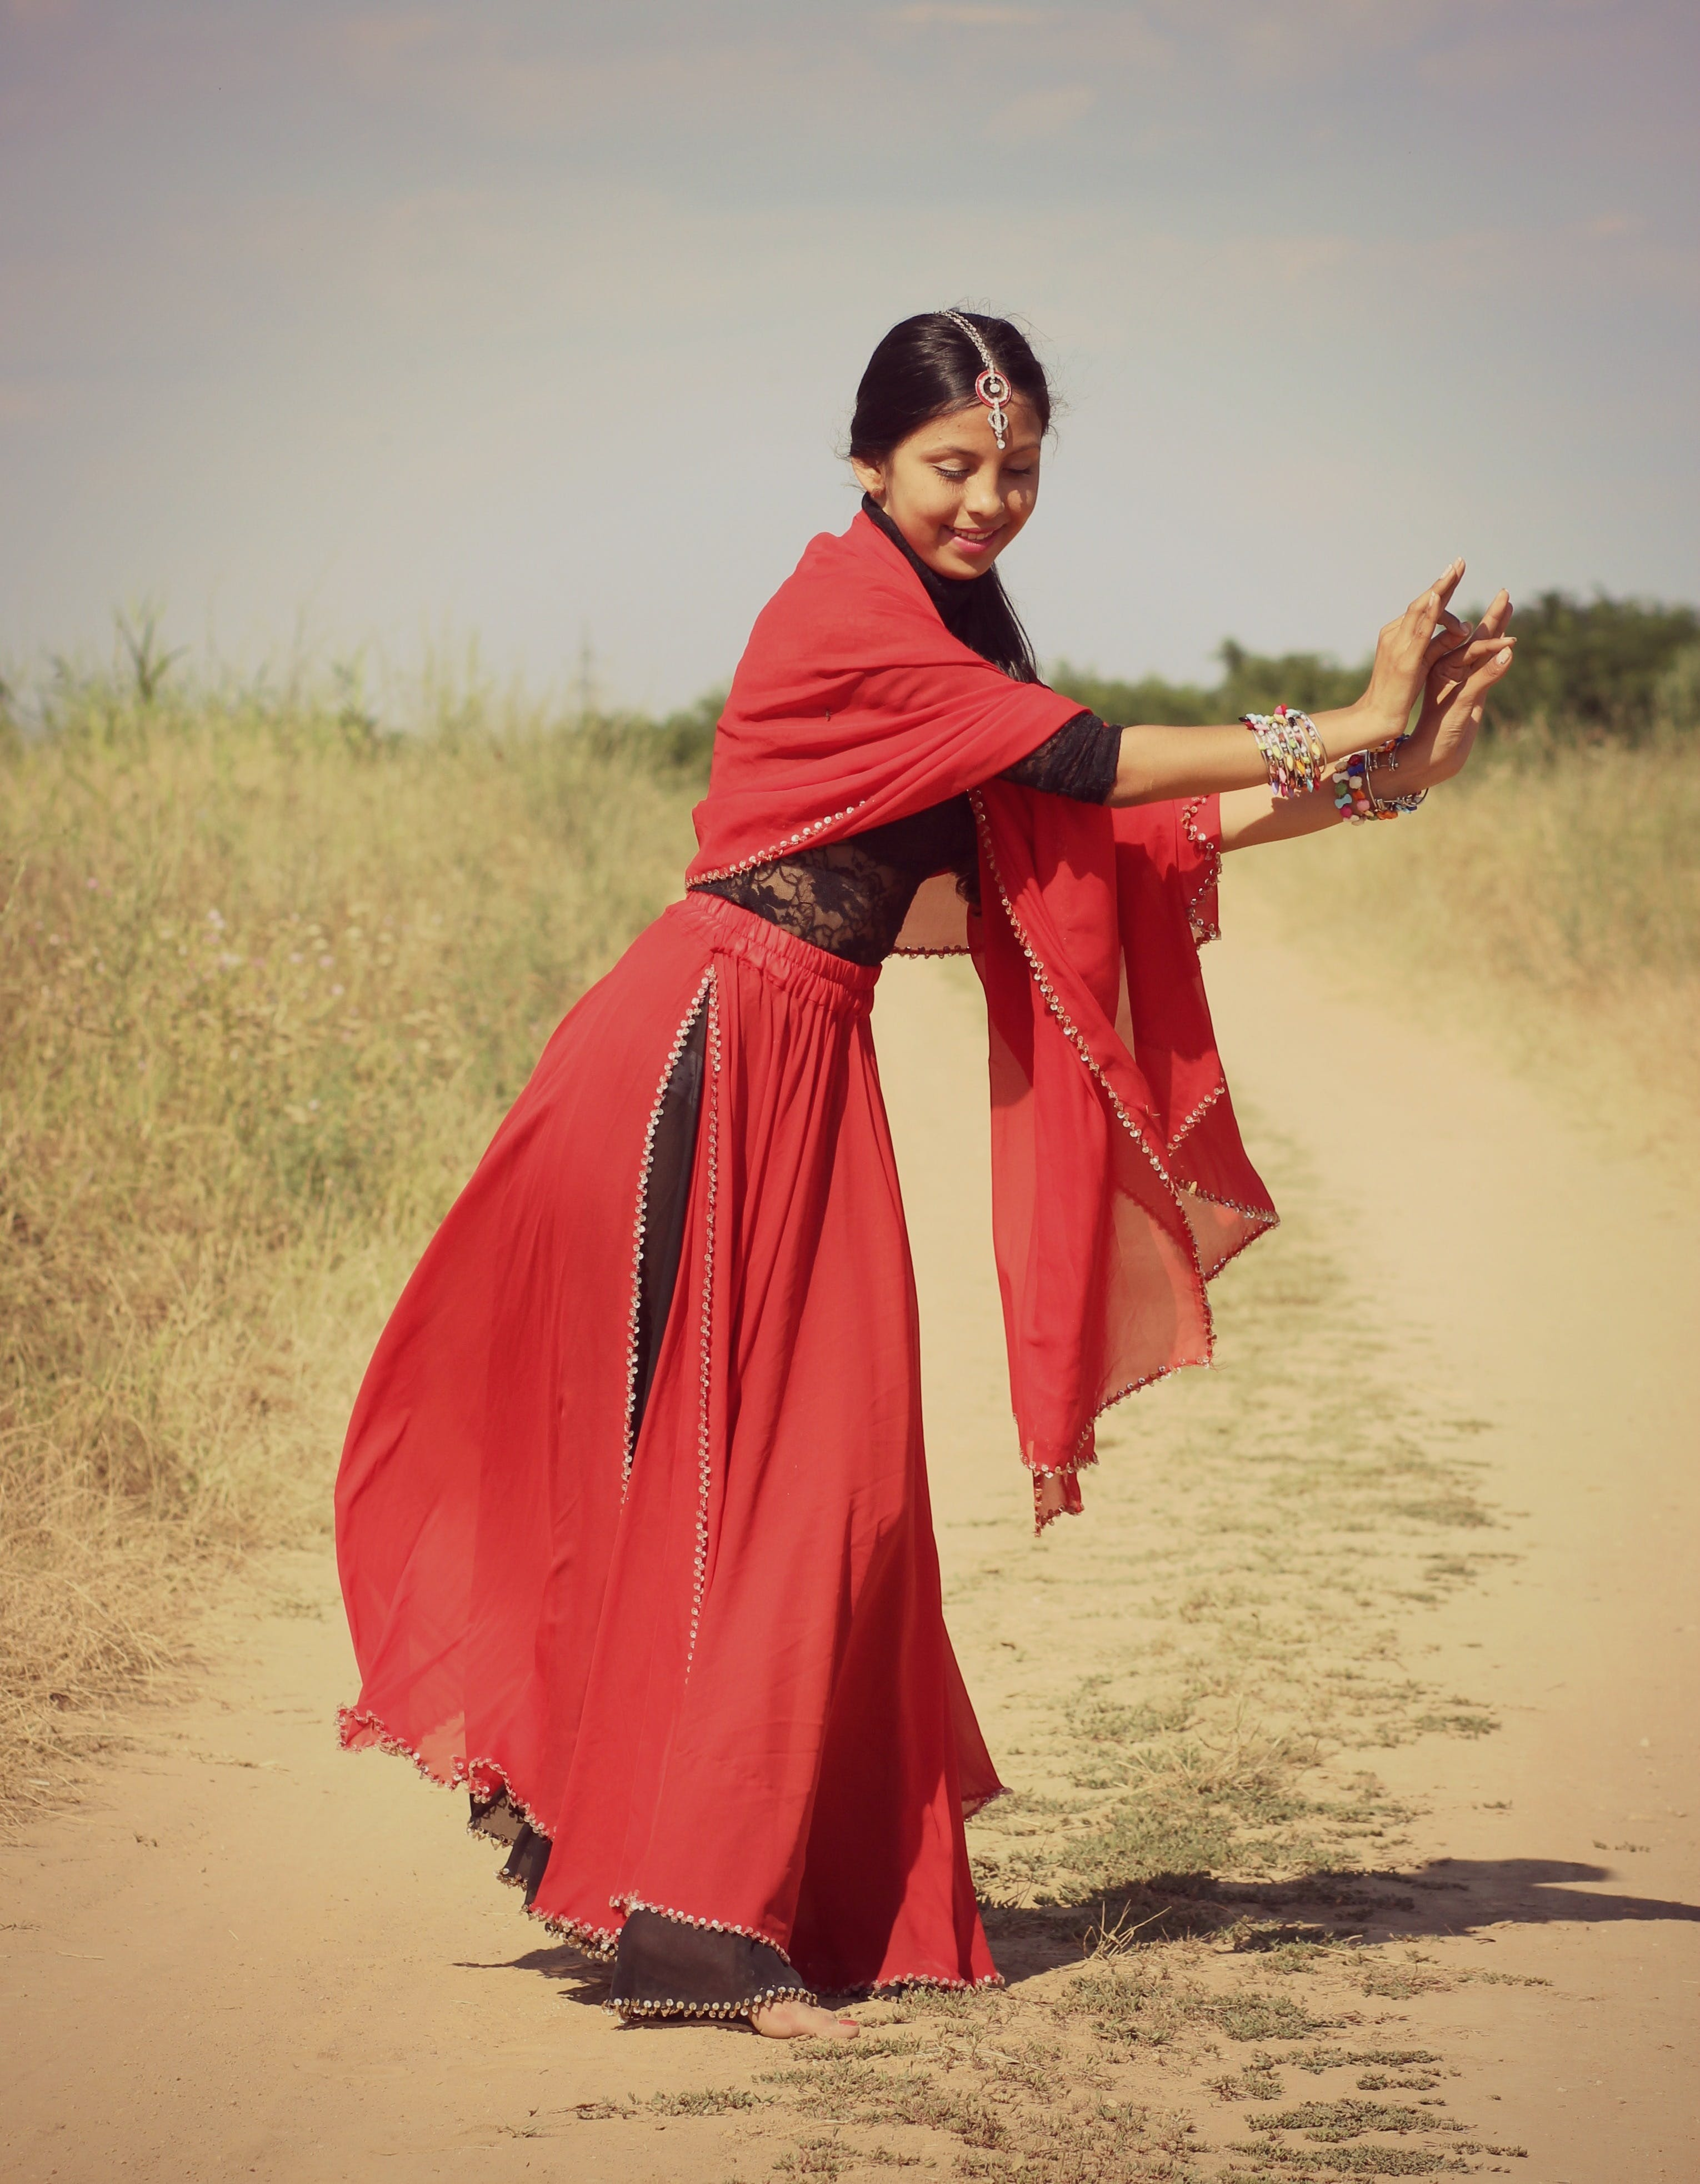 Woman in Red and Black 3/4 Sleeve Dress Dancing